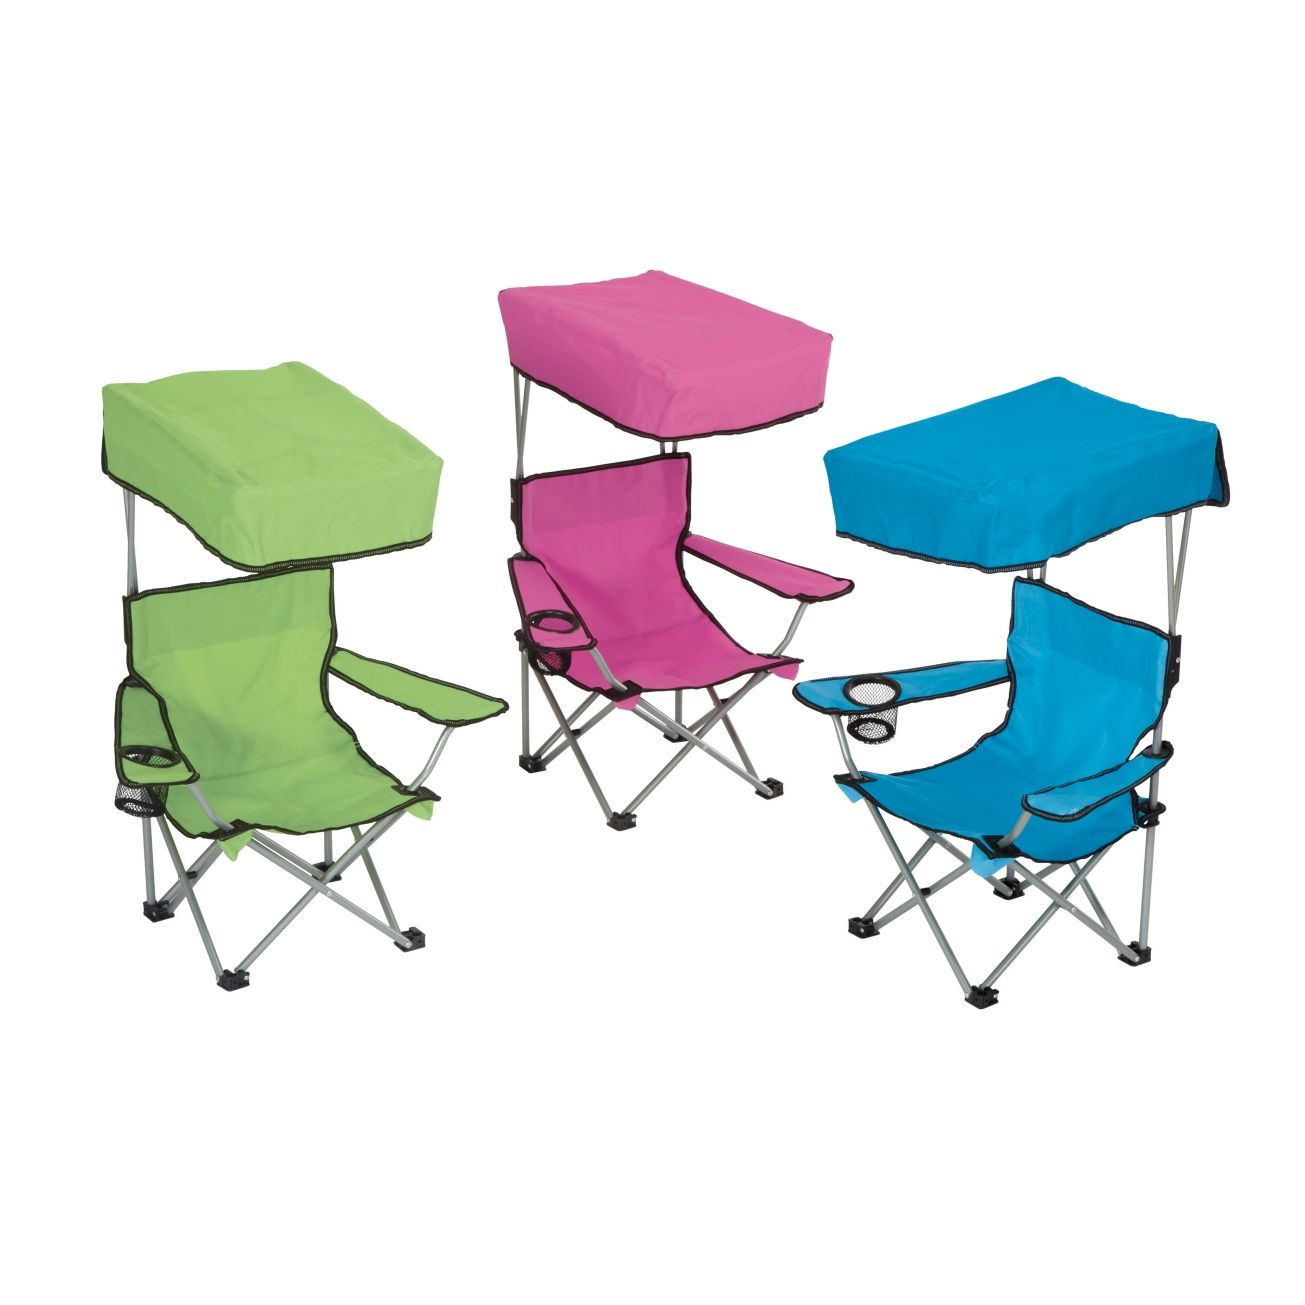 Camp Chair With Canopy Sport Chairs With Canopy And Ultimate Spectator Chair